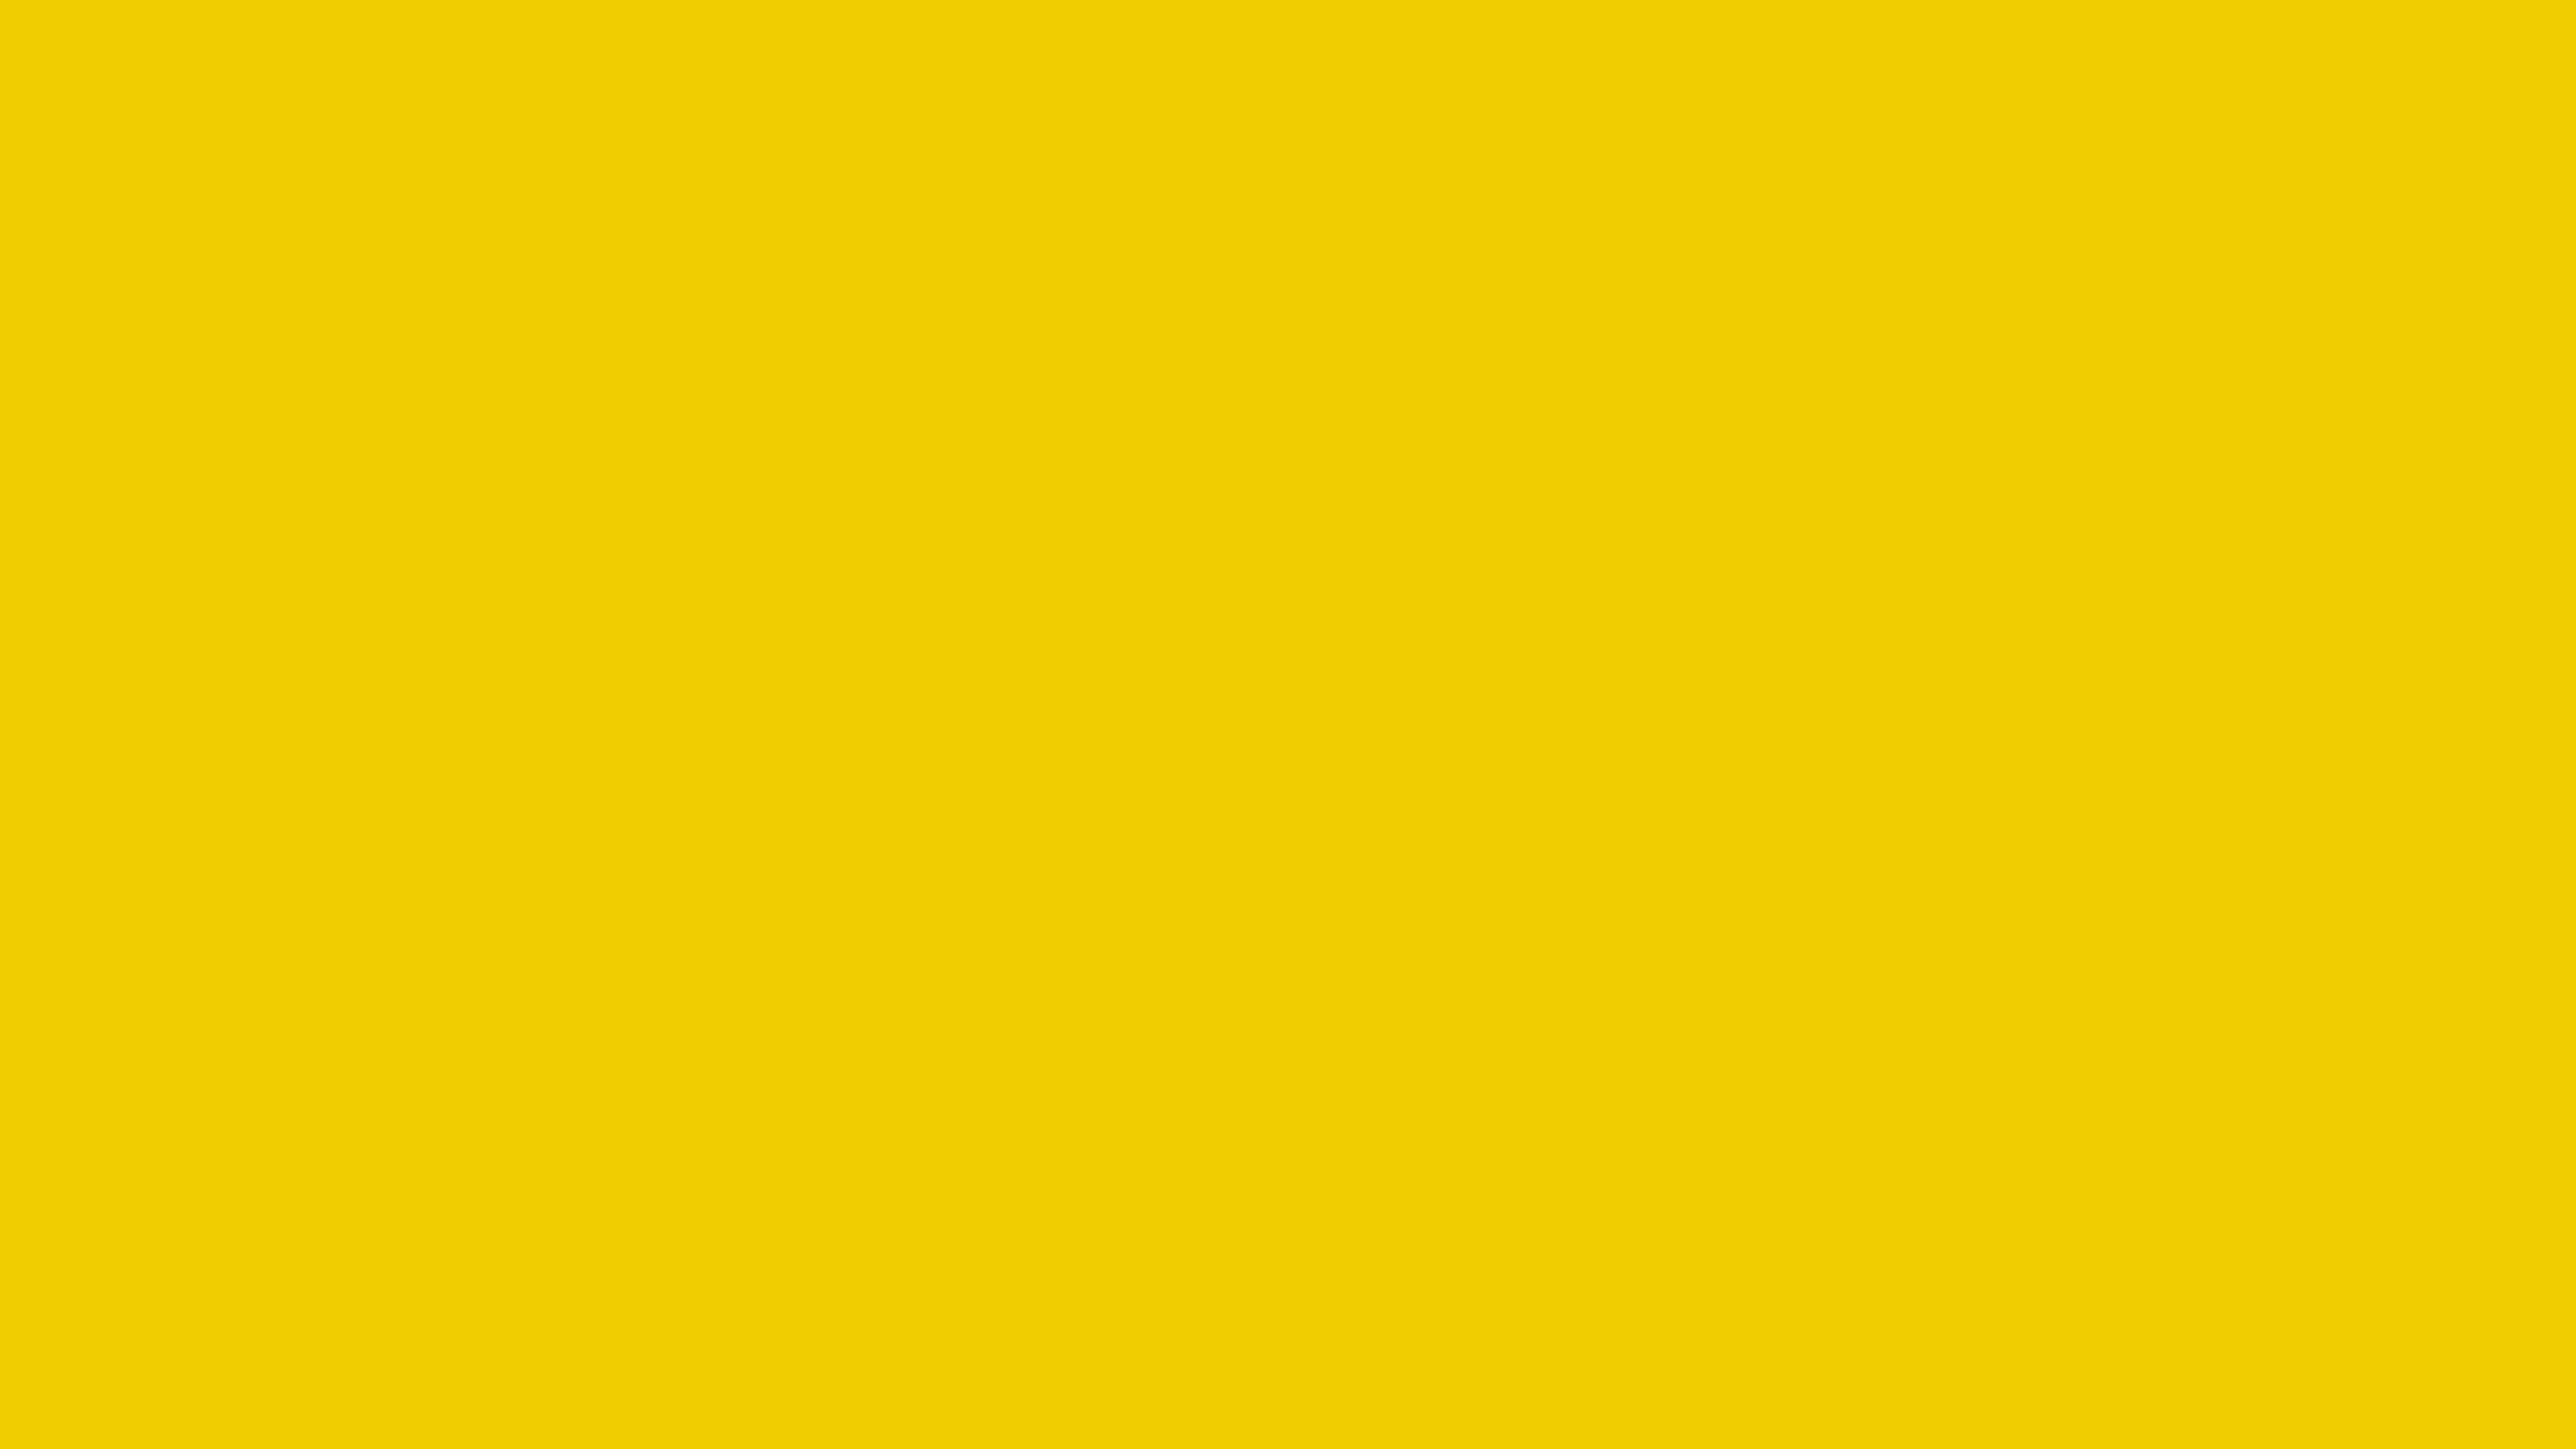 5120x2880 Yellow Munsell Solid Color Background